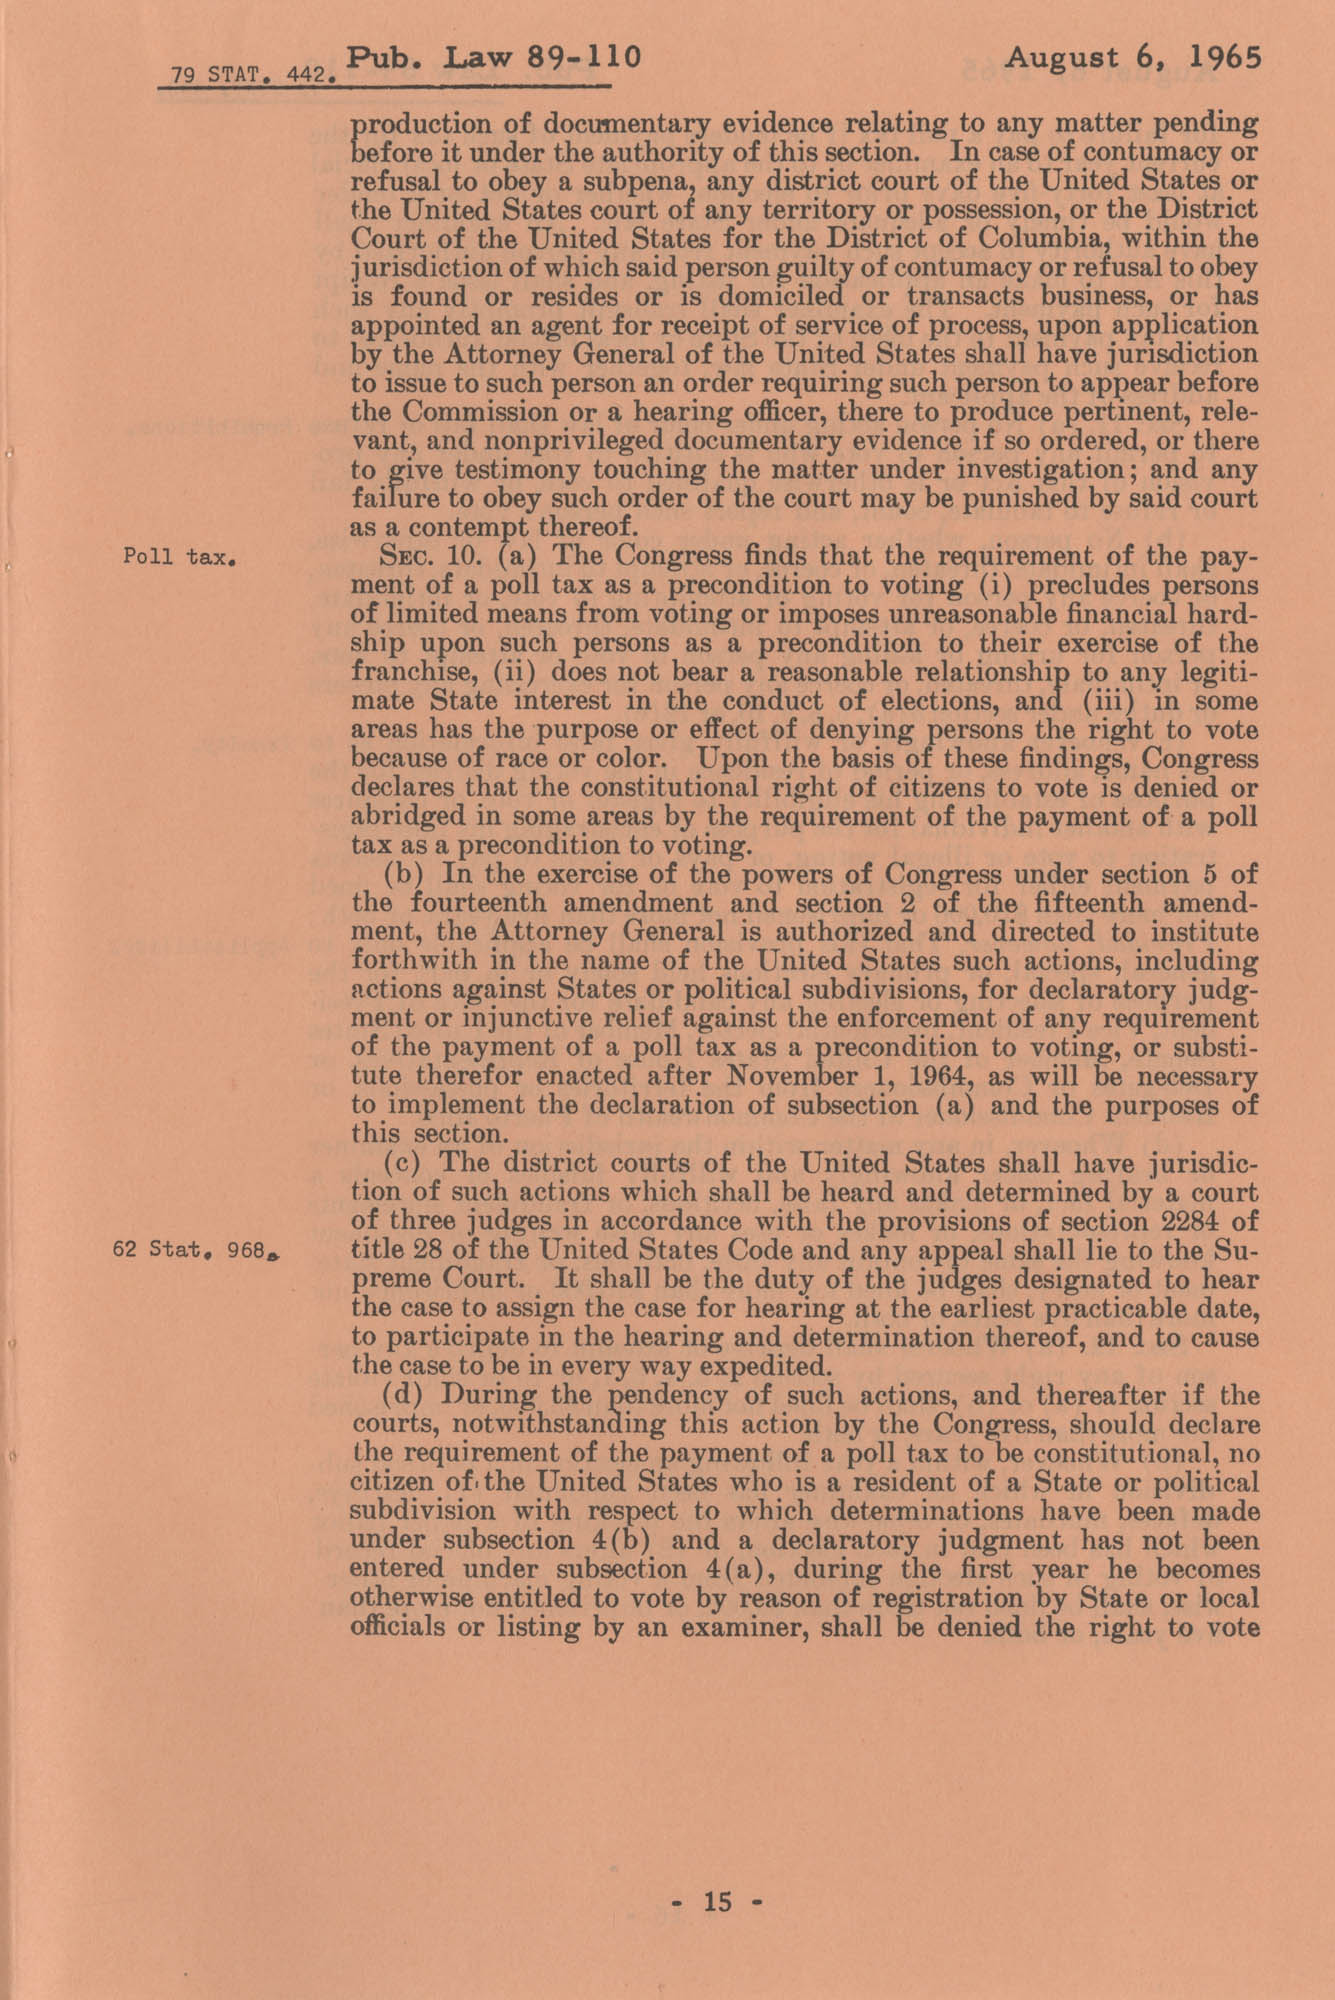 The Voting Rights Act of 1965, Page 15